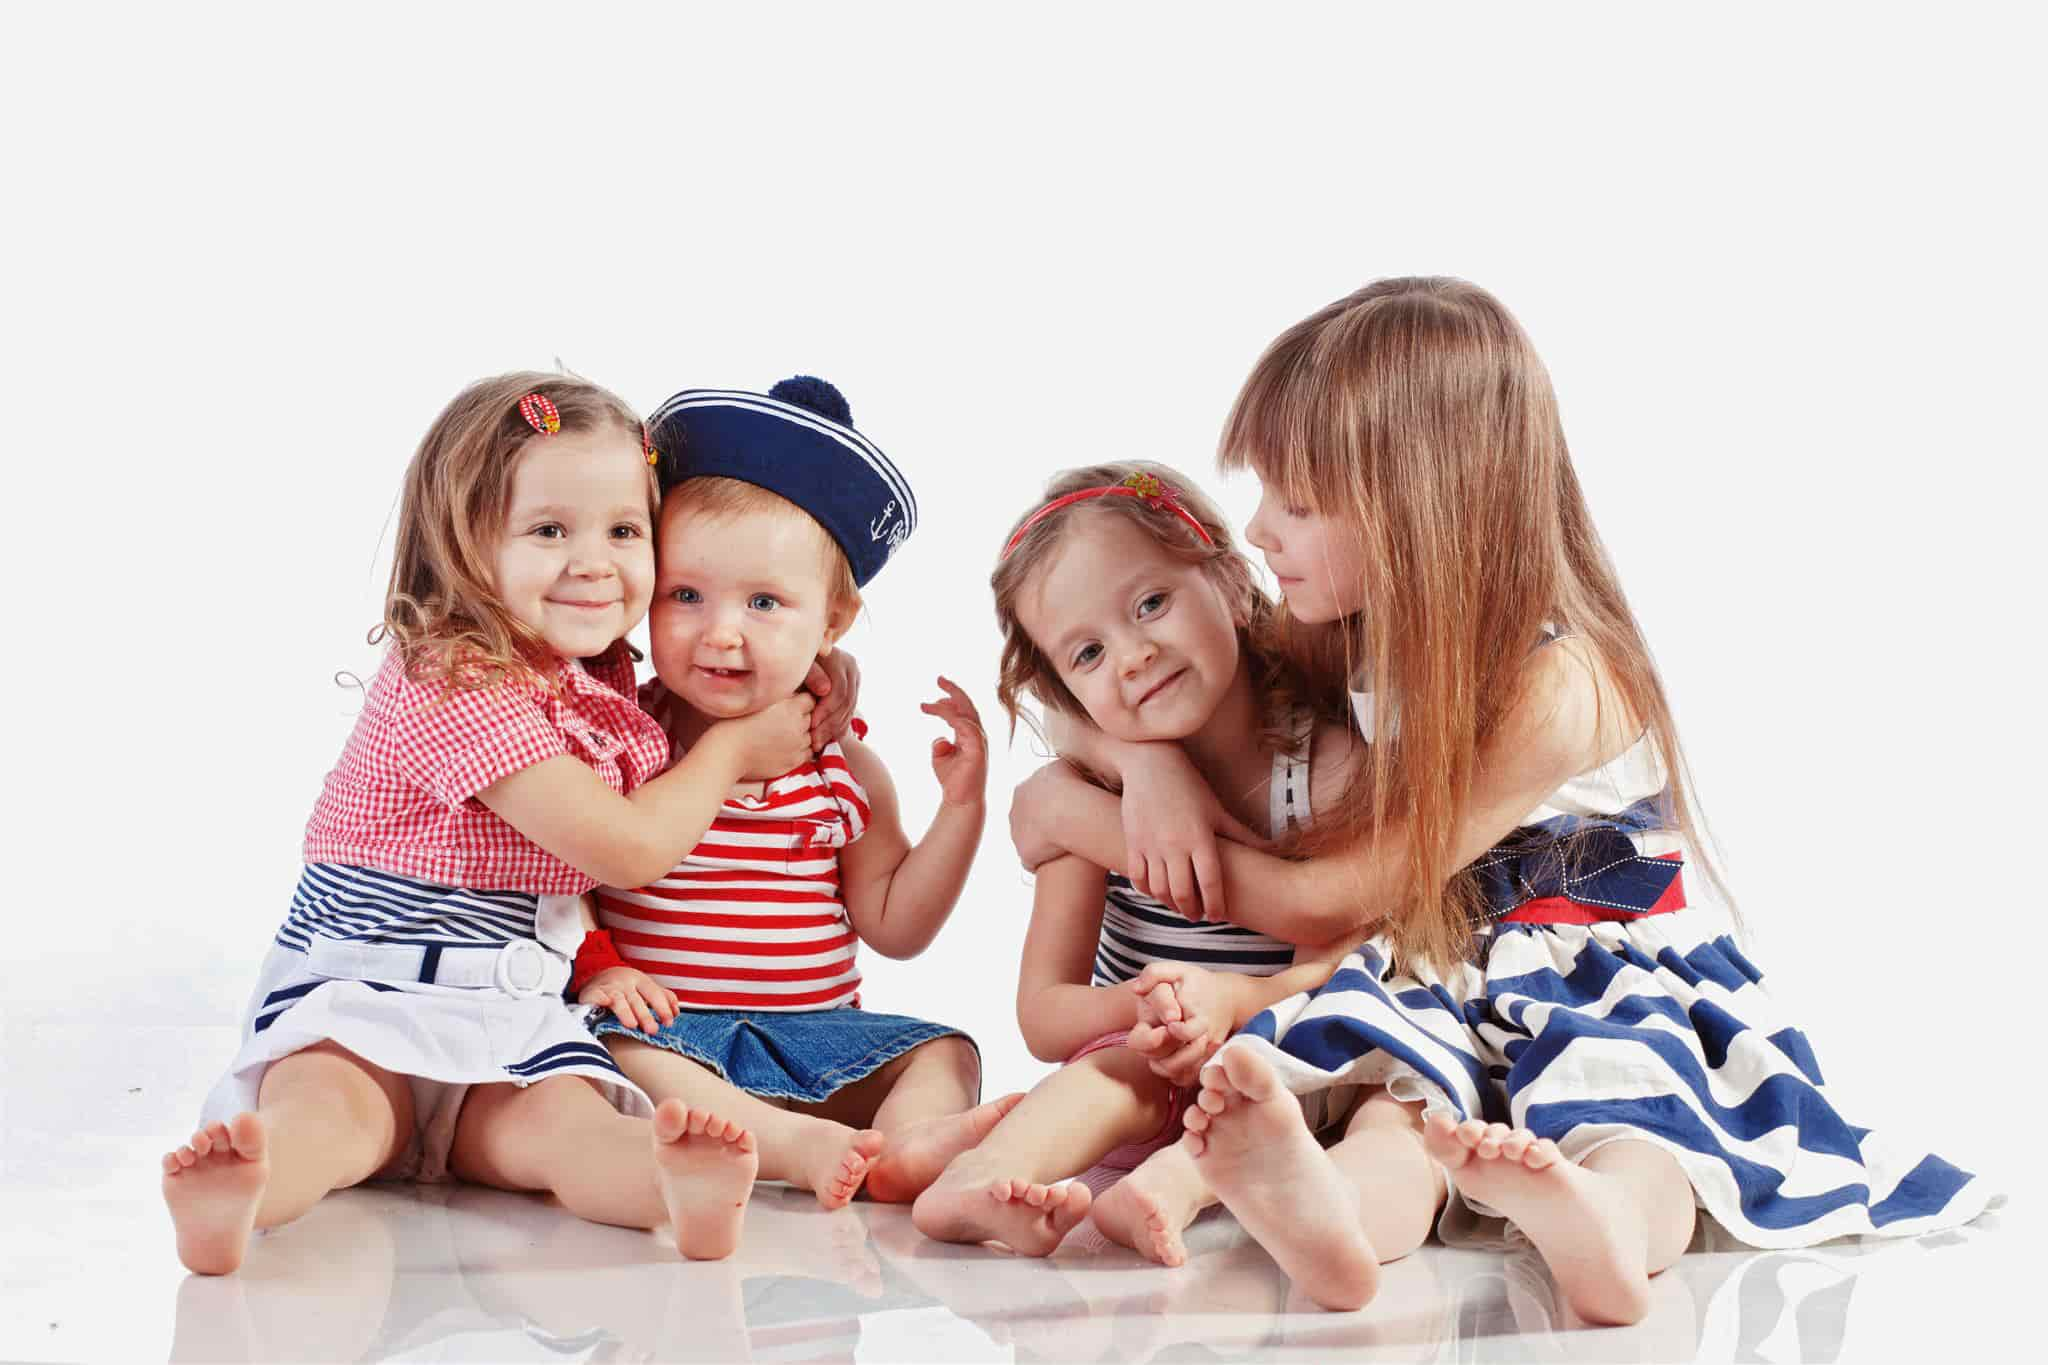 Kids Clothing Stores - cashback deals, promo codes, coupons & discounts